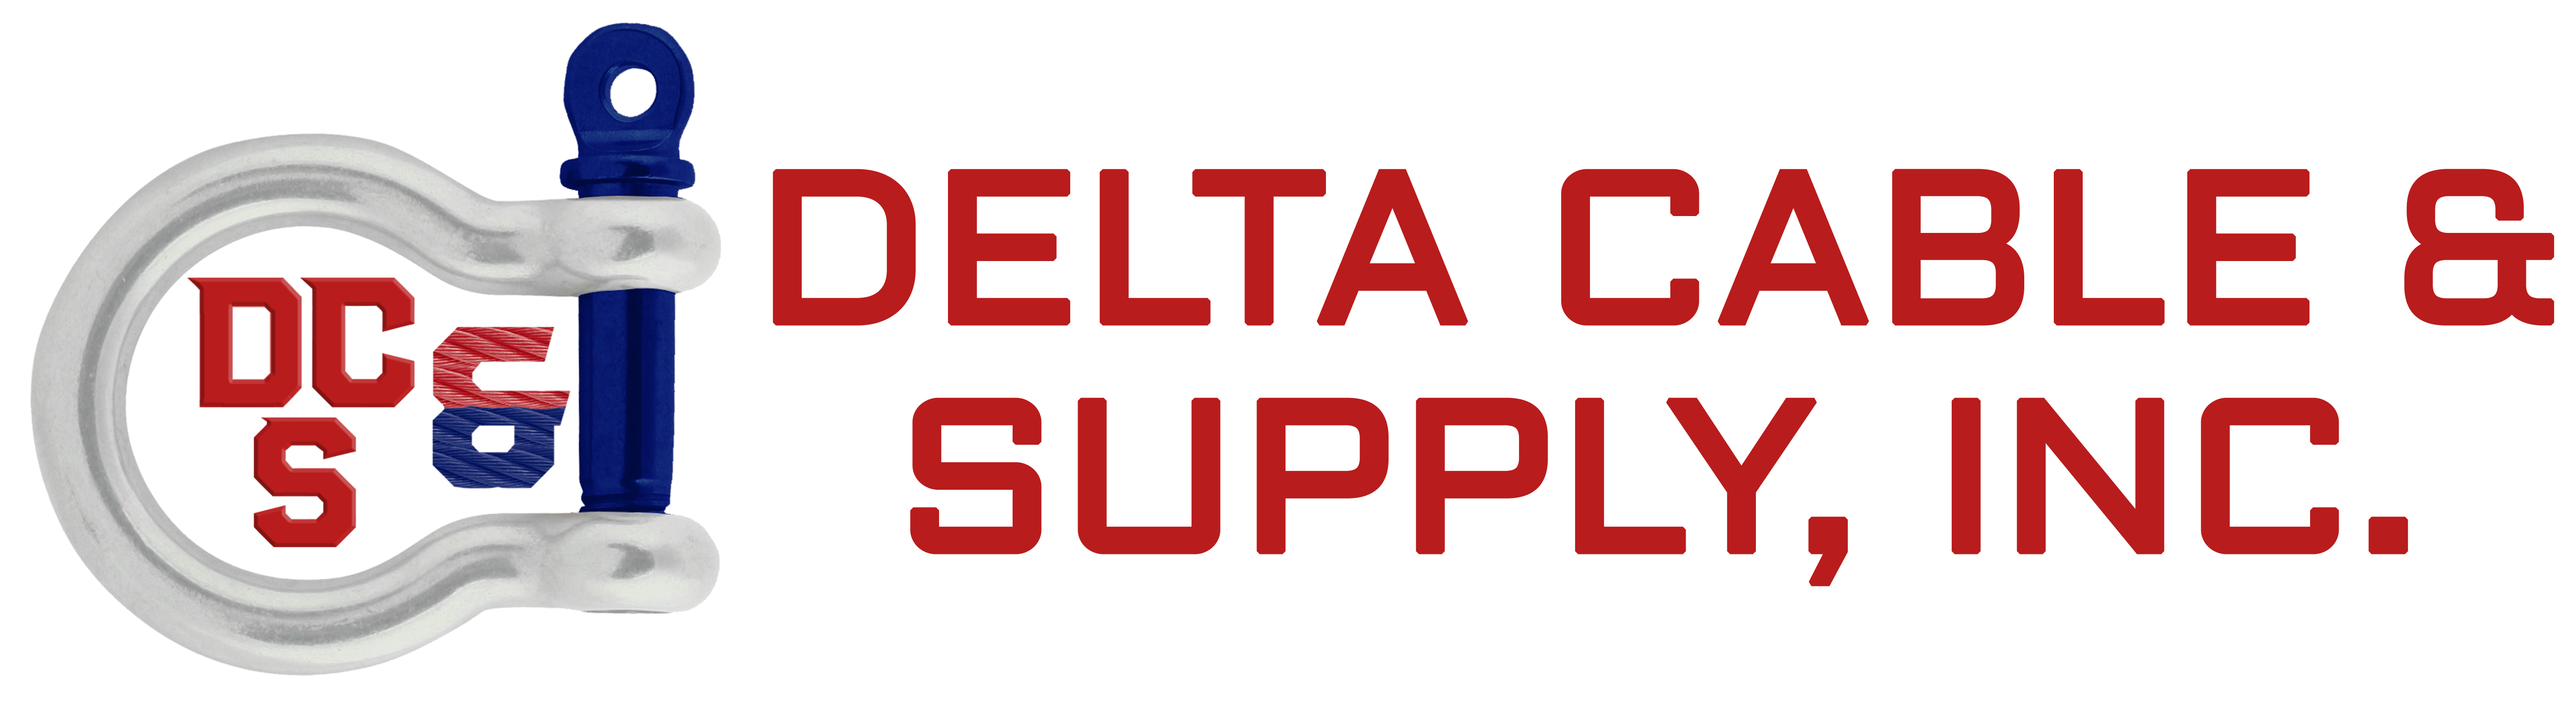 Delta Cable & Supply